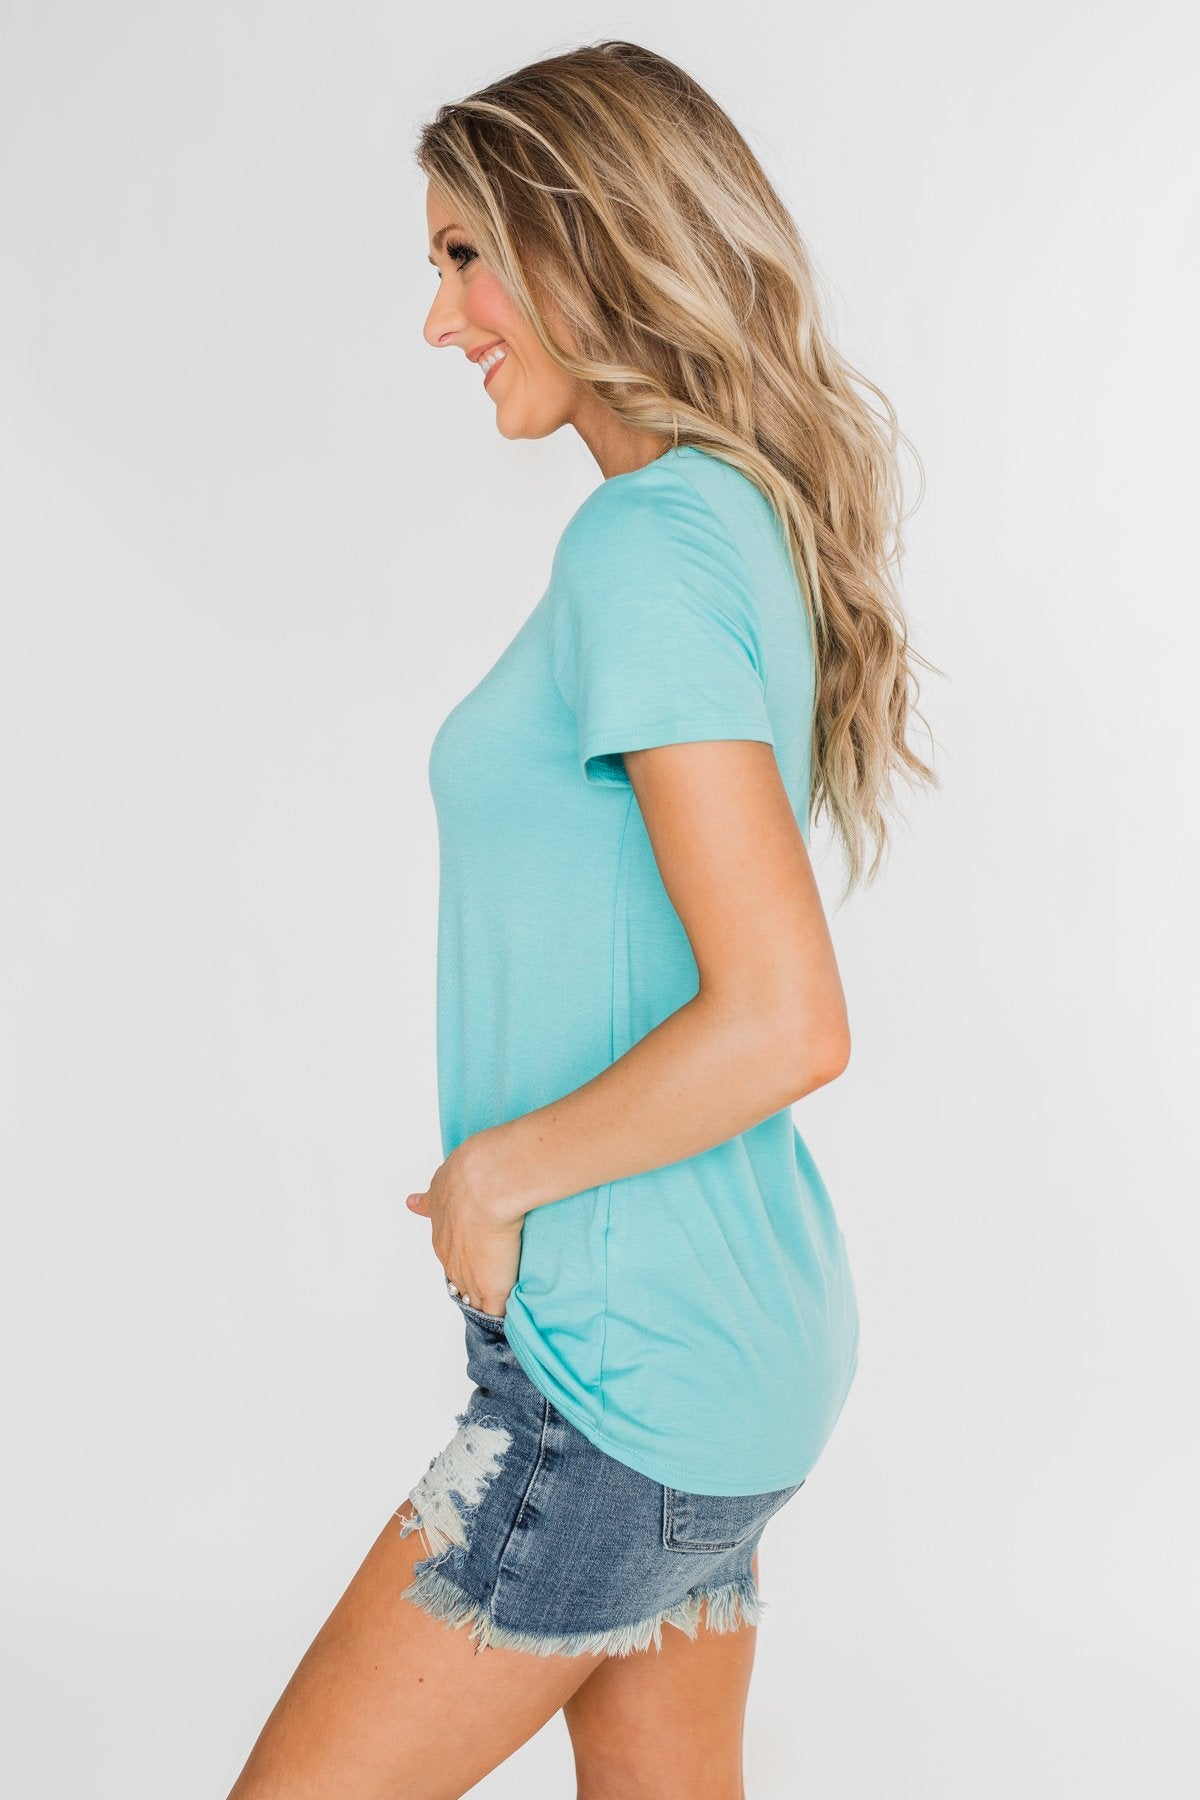 Meet Me Here Short Sleeve Top- Aqua